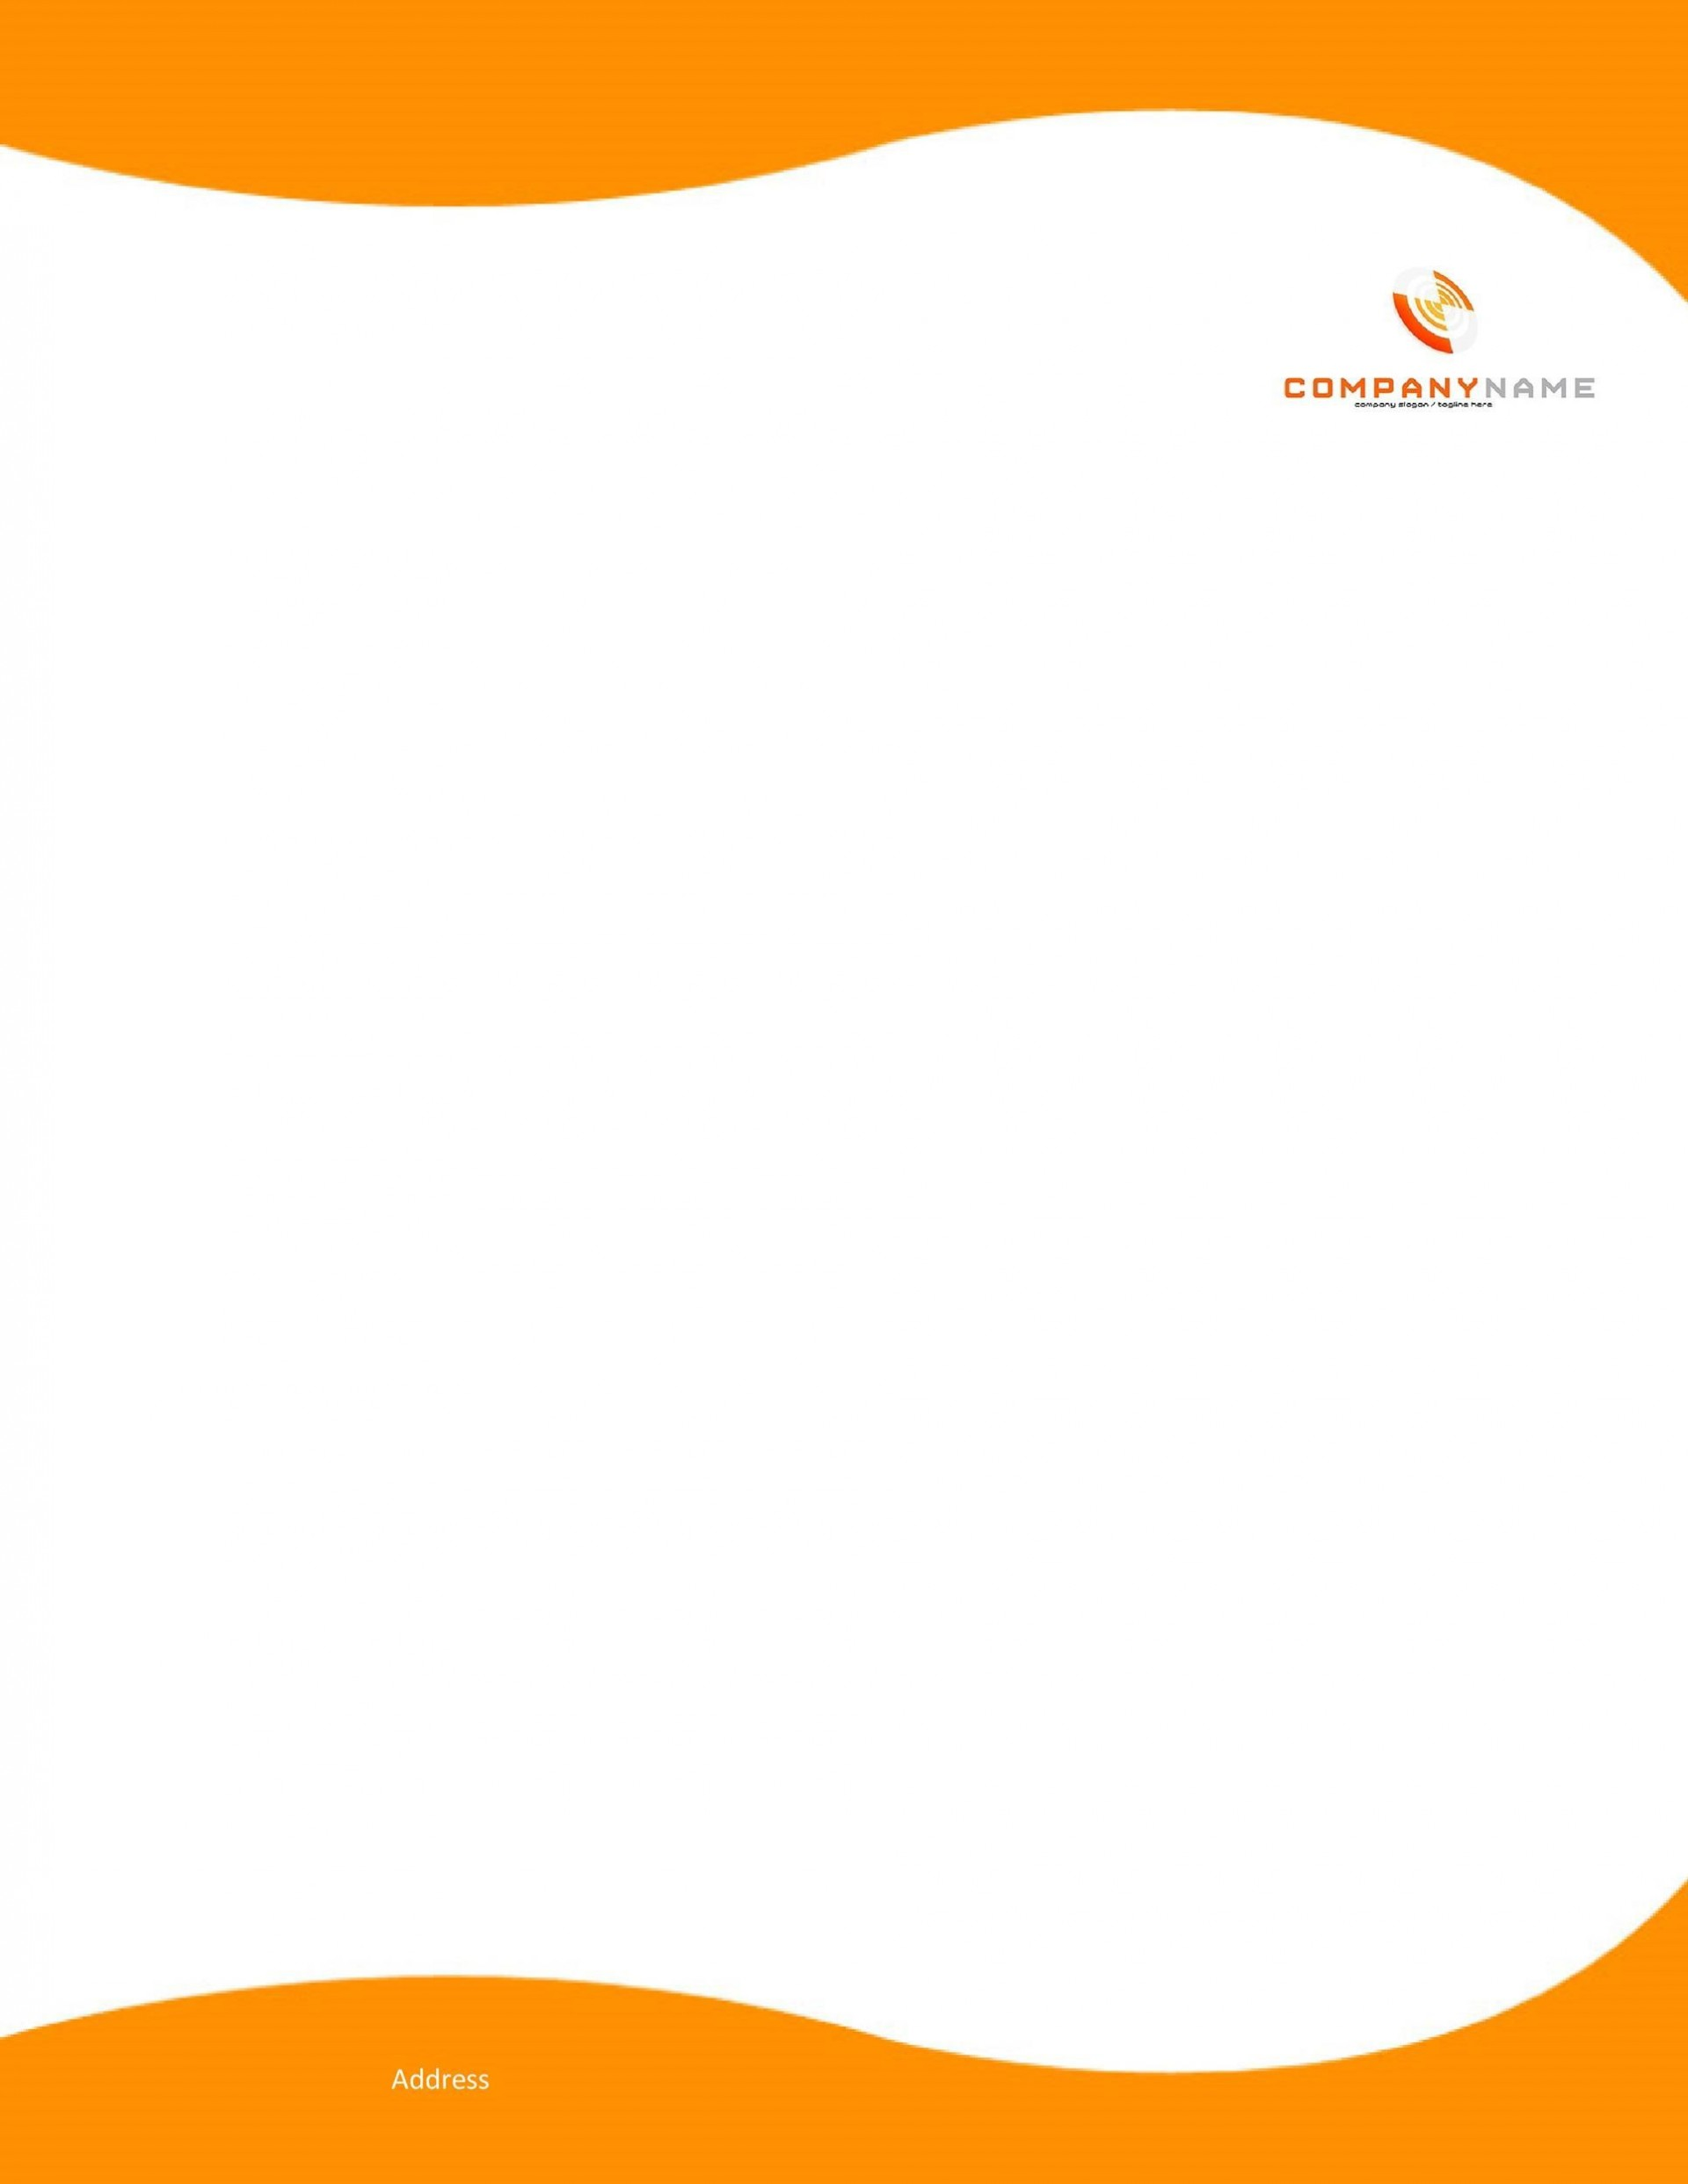 007 Unbelievable Company Letterhead Format In Word Free Download Design  Sample Template 20201920